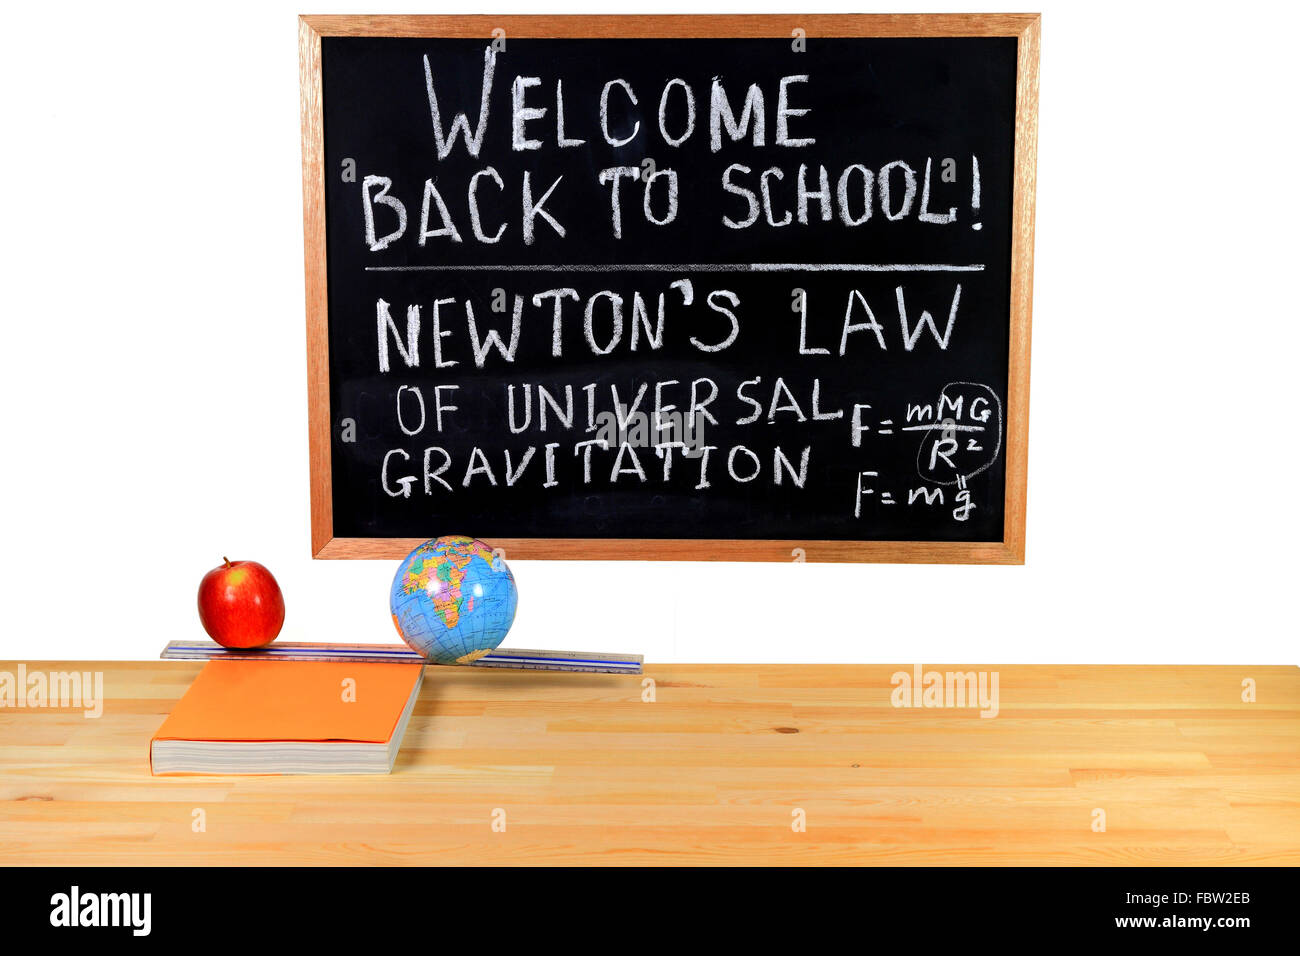 Welcome Back To School Stock Photos Simple Electric Motor Diagram Schoolphysics Physics Class Image